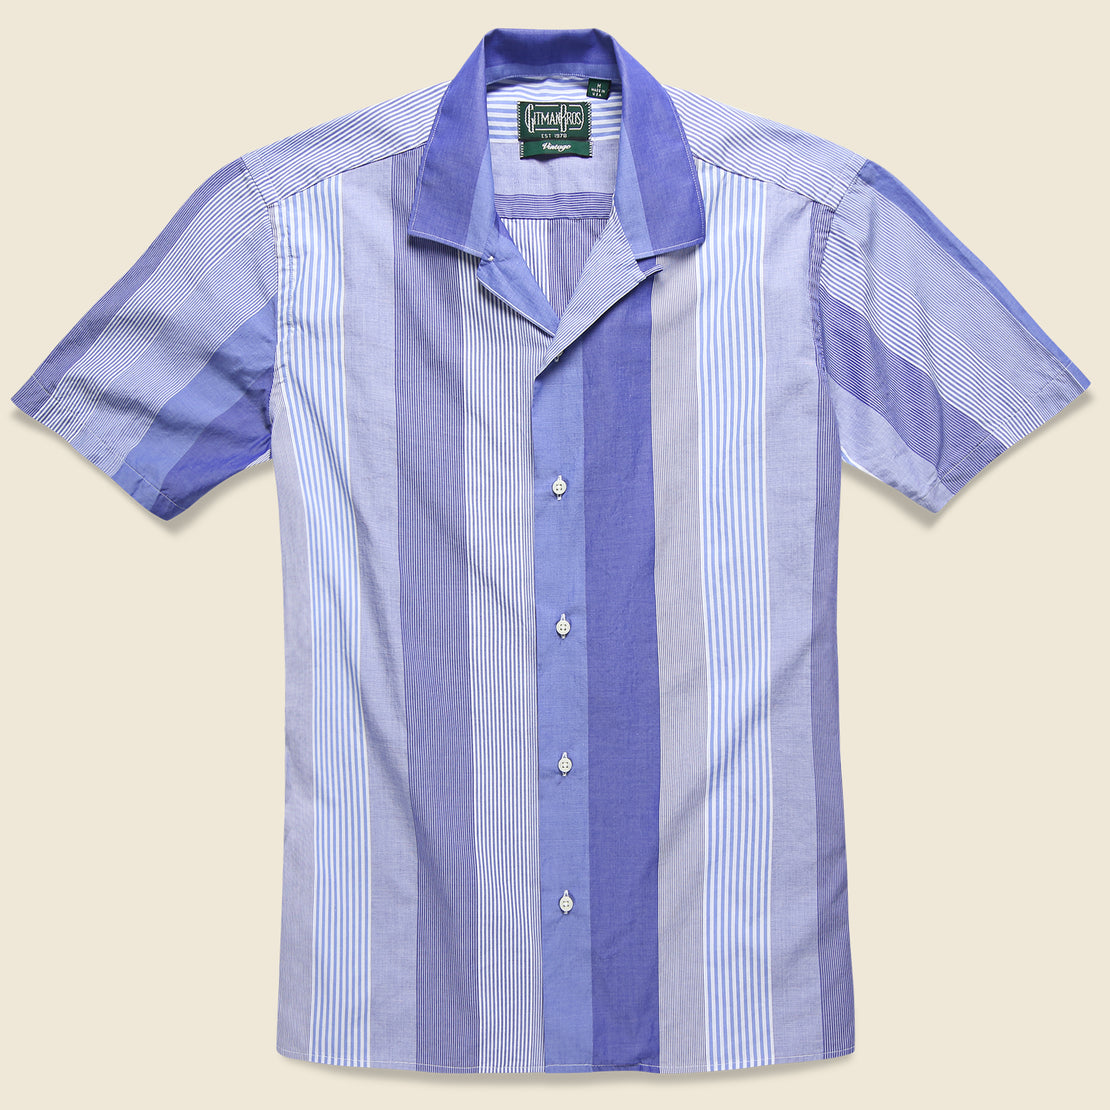 Gitman Vintage Stripe Shirt - Blue/White